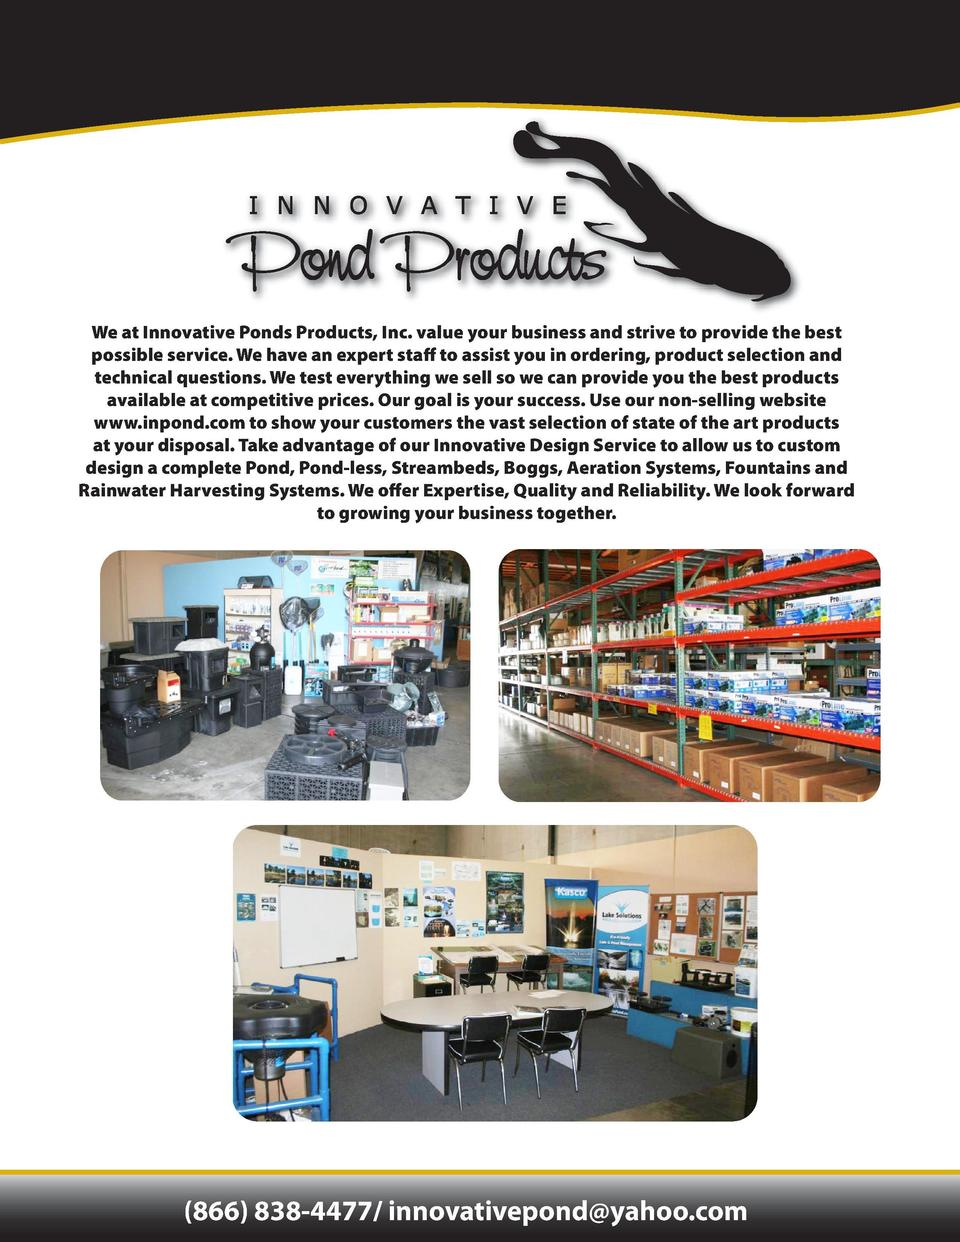 TABLE OF CONTENTS  We at Innovative Ponds Products, Inc. value your business and strive to provide the best possible servi...